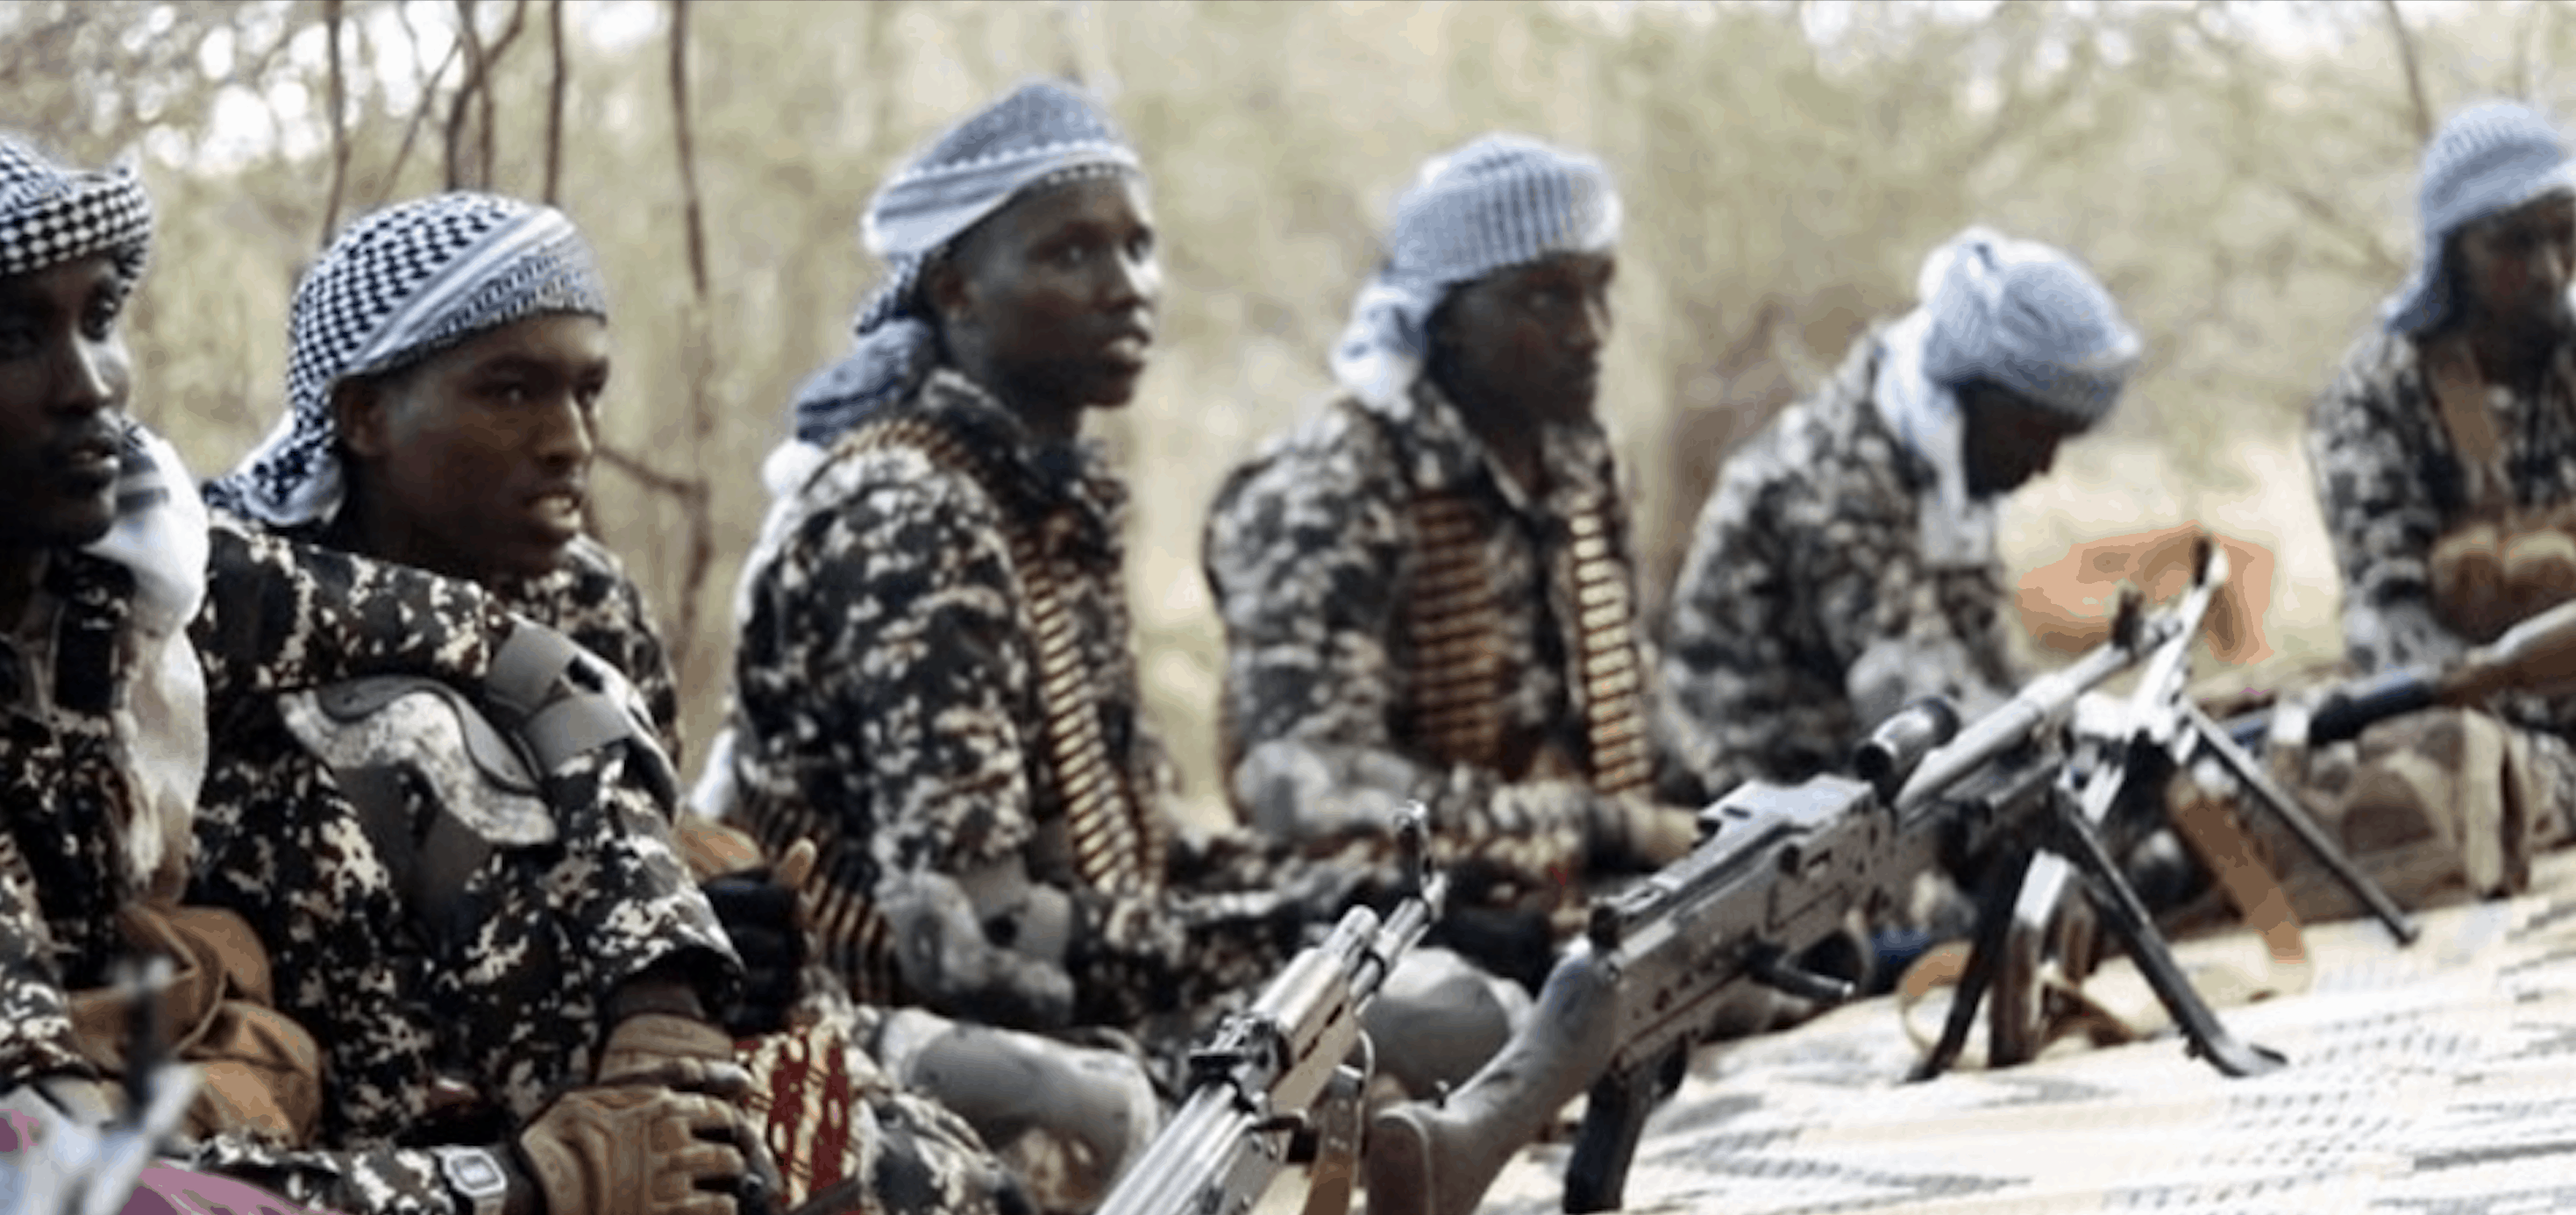 Al-Shabaab In the Age Of COVID-19